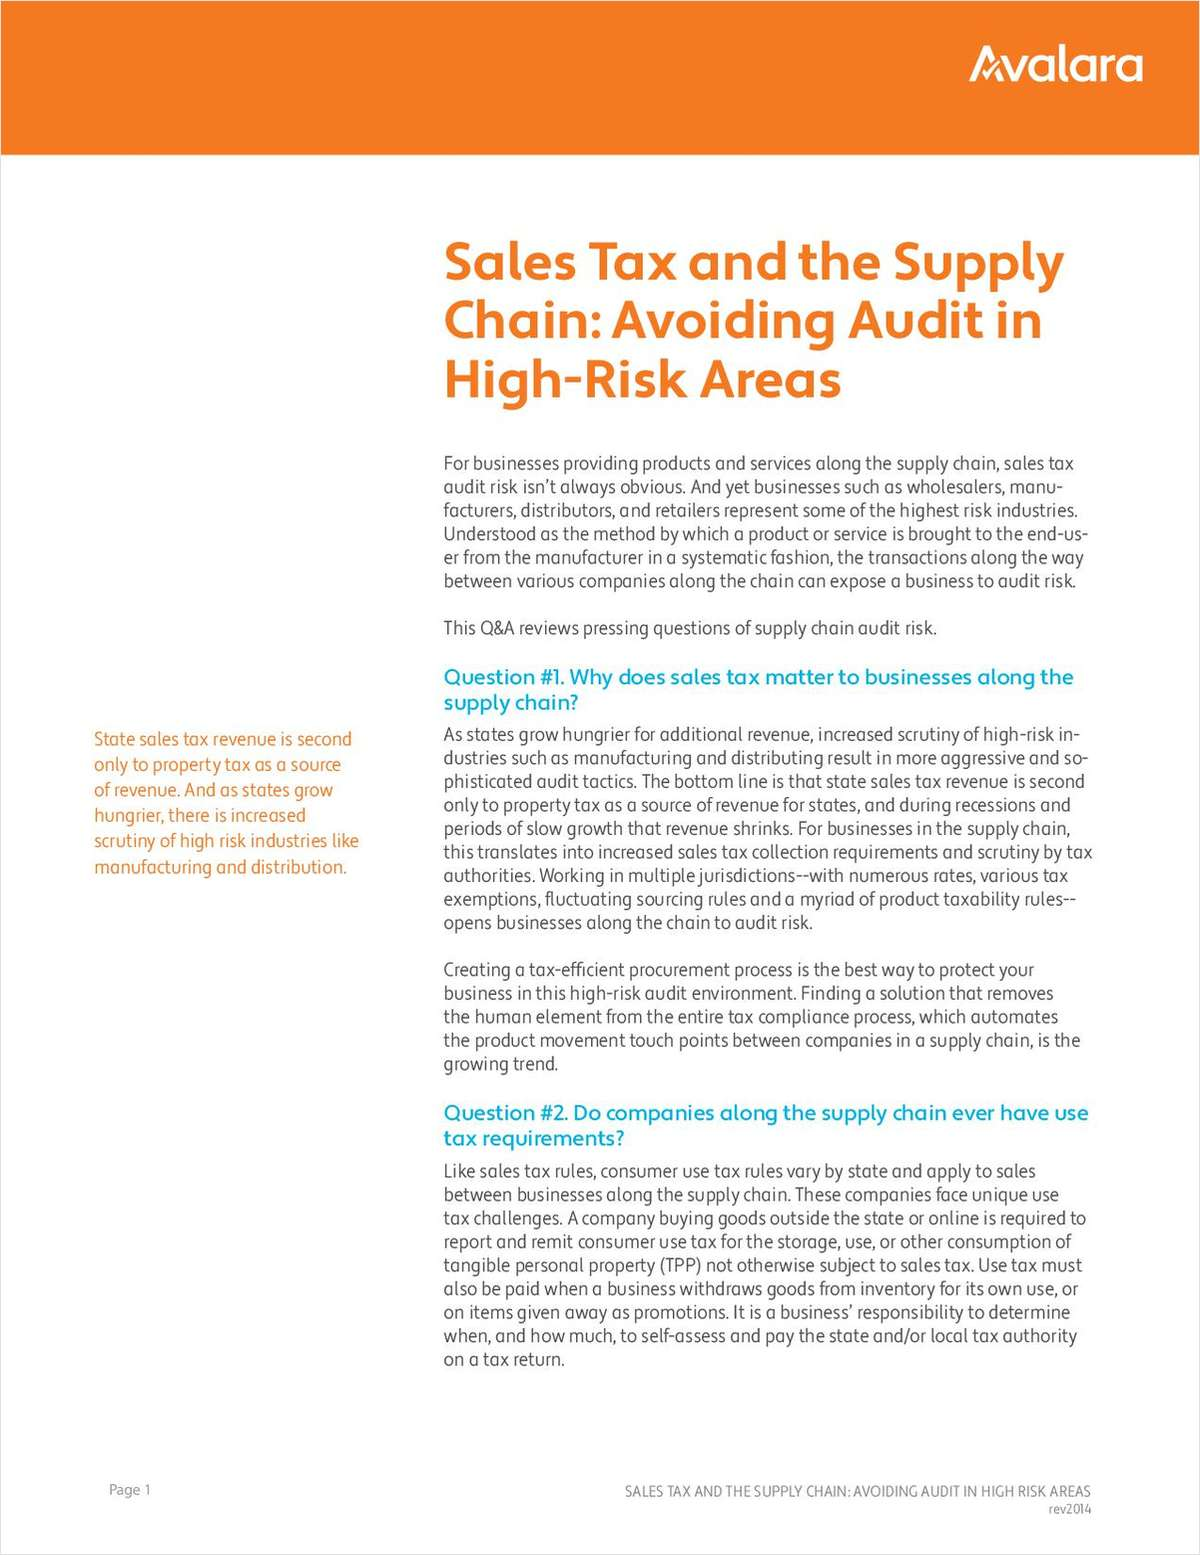 Sales Tax and the Supply Chain: Avoiding Audit in  High-Risk Areas